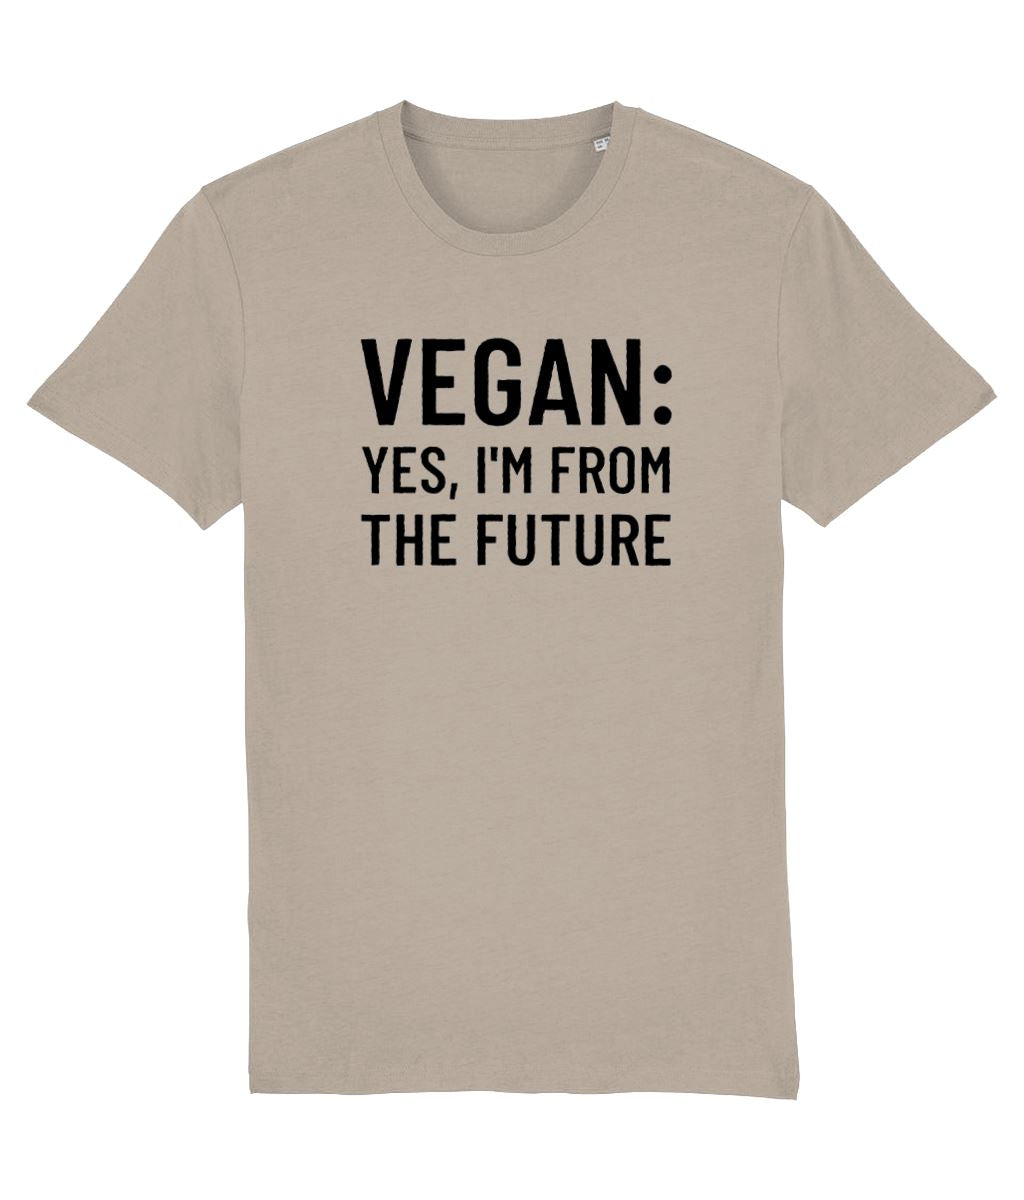 """Vegan: Yes, I'm From the Future"" - T-Shirt - 100% Organic Cotton (Unisex) Clothing Vegan Original Desert Dust X-Small"